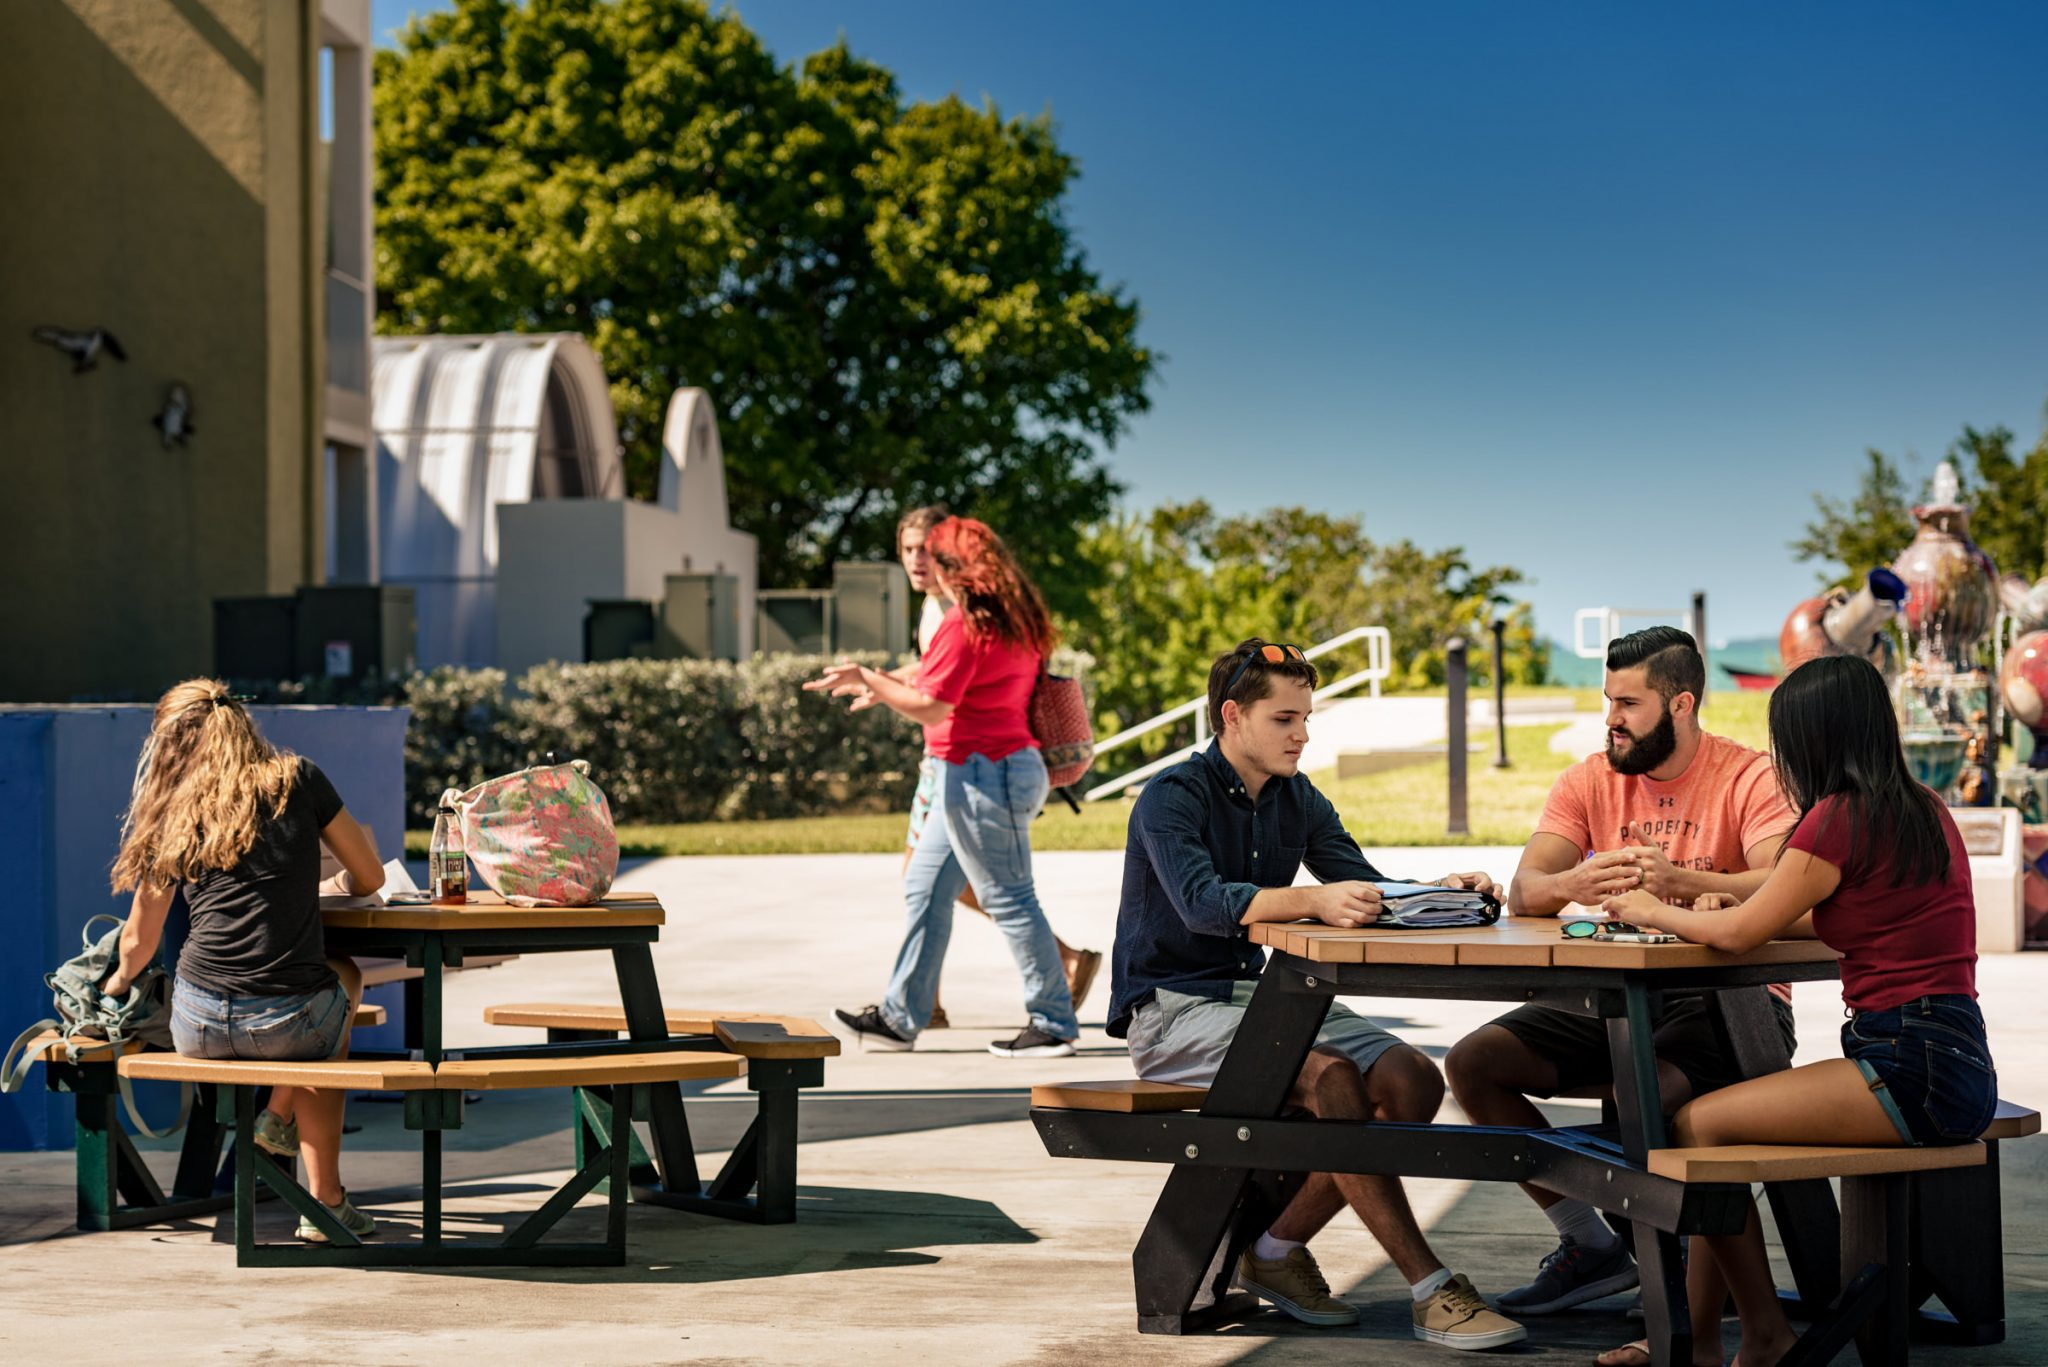 Students siting at outdoor tables on a college campus